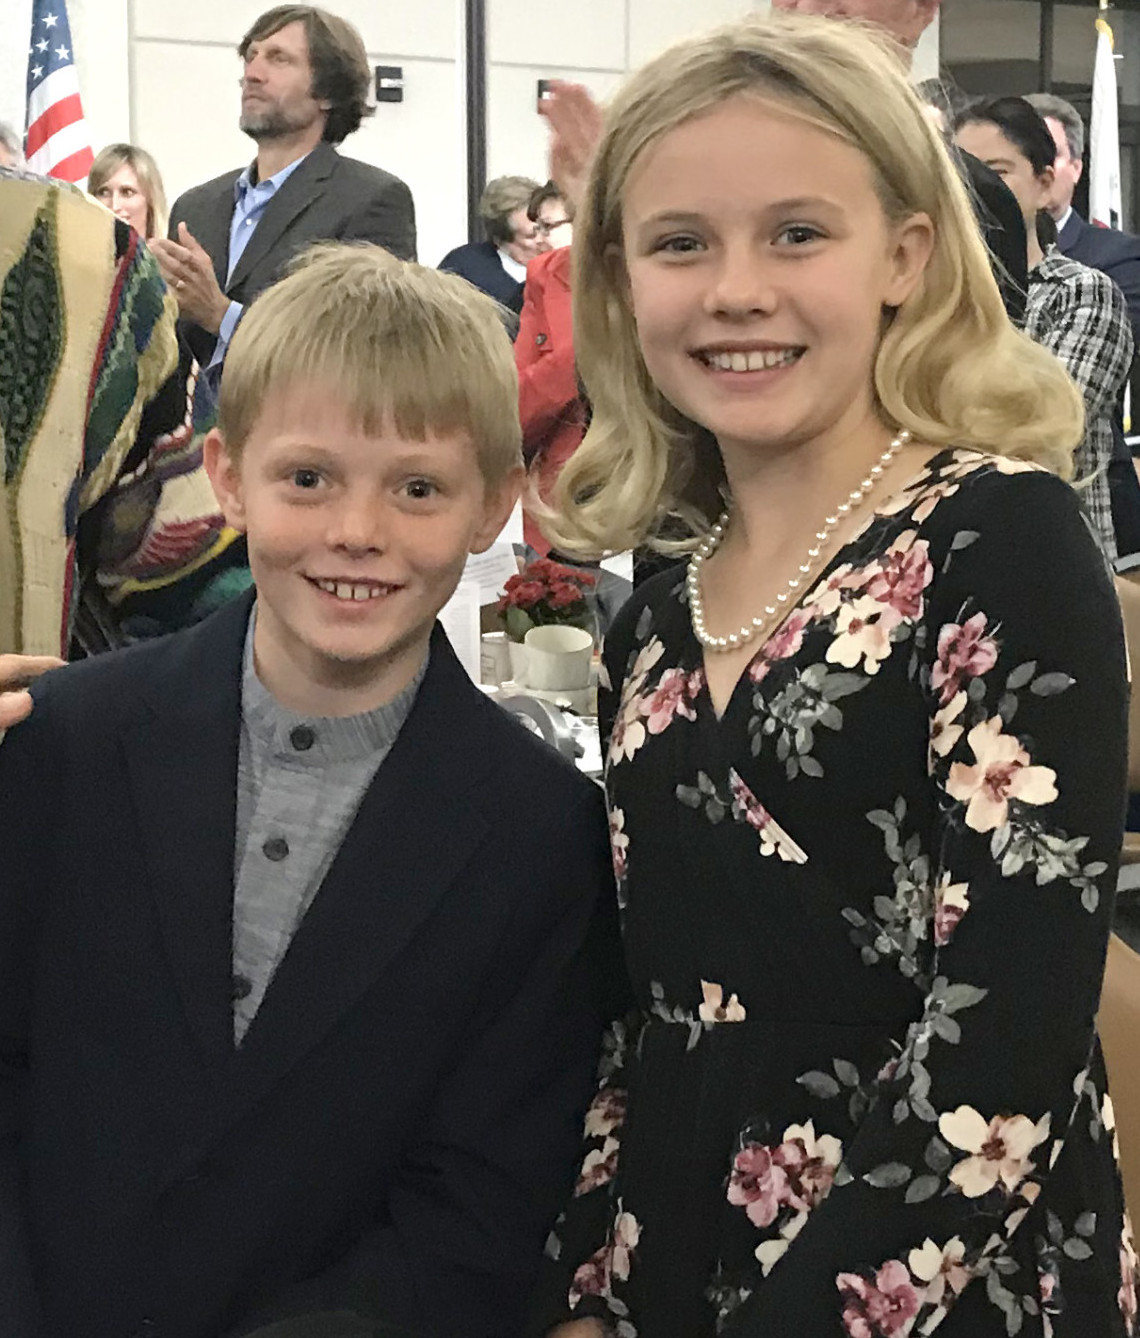 Mayor's kids steal show at State of the City Address